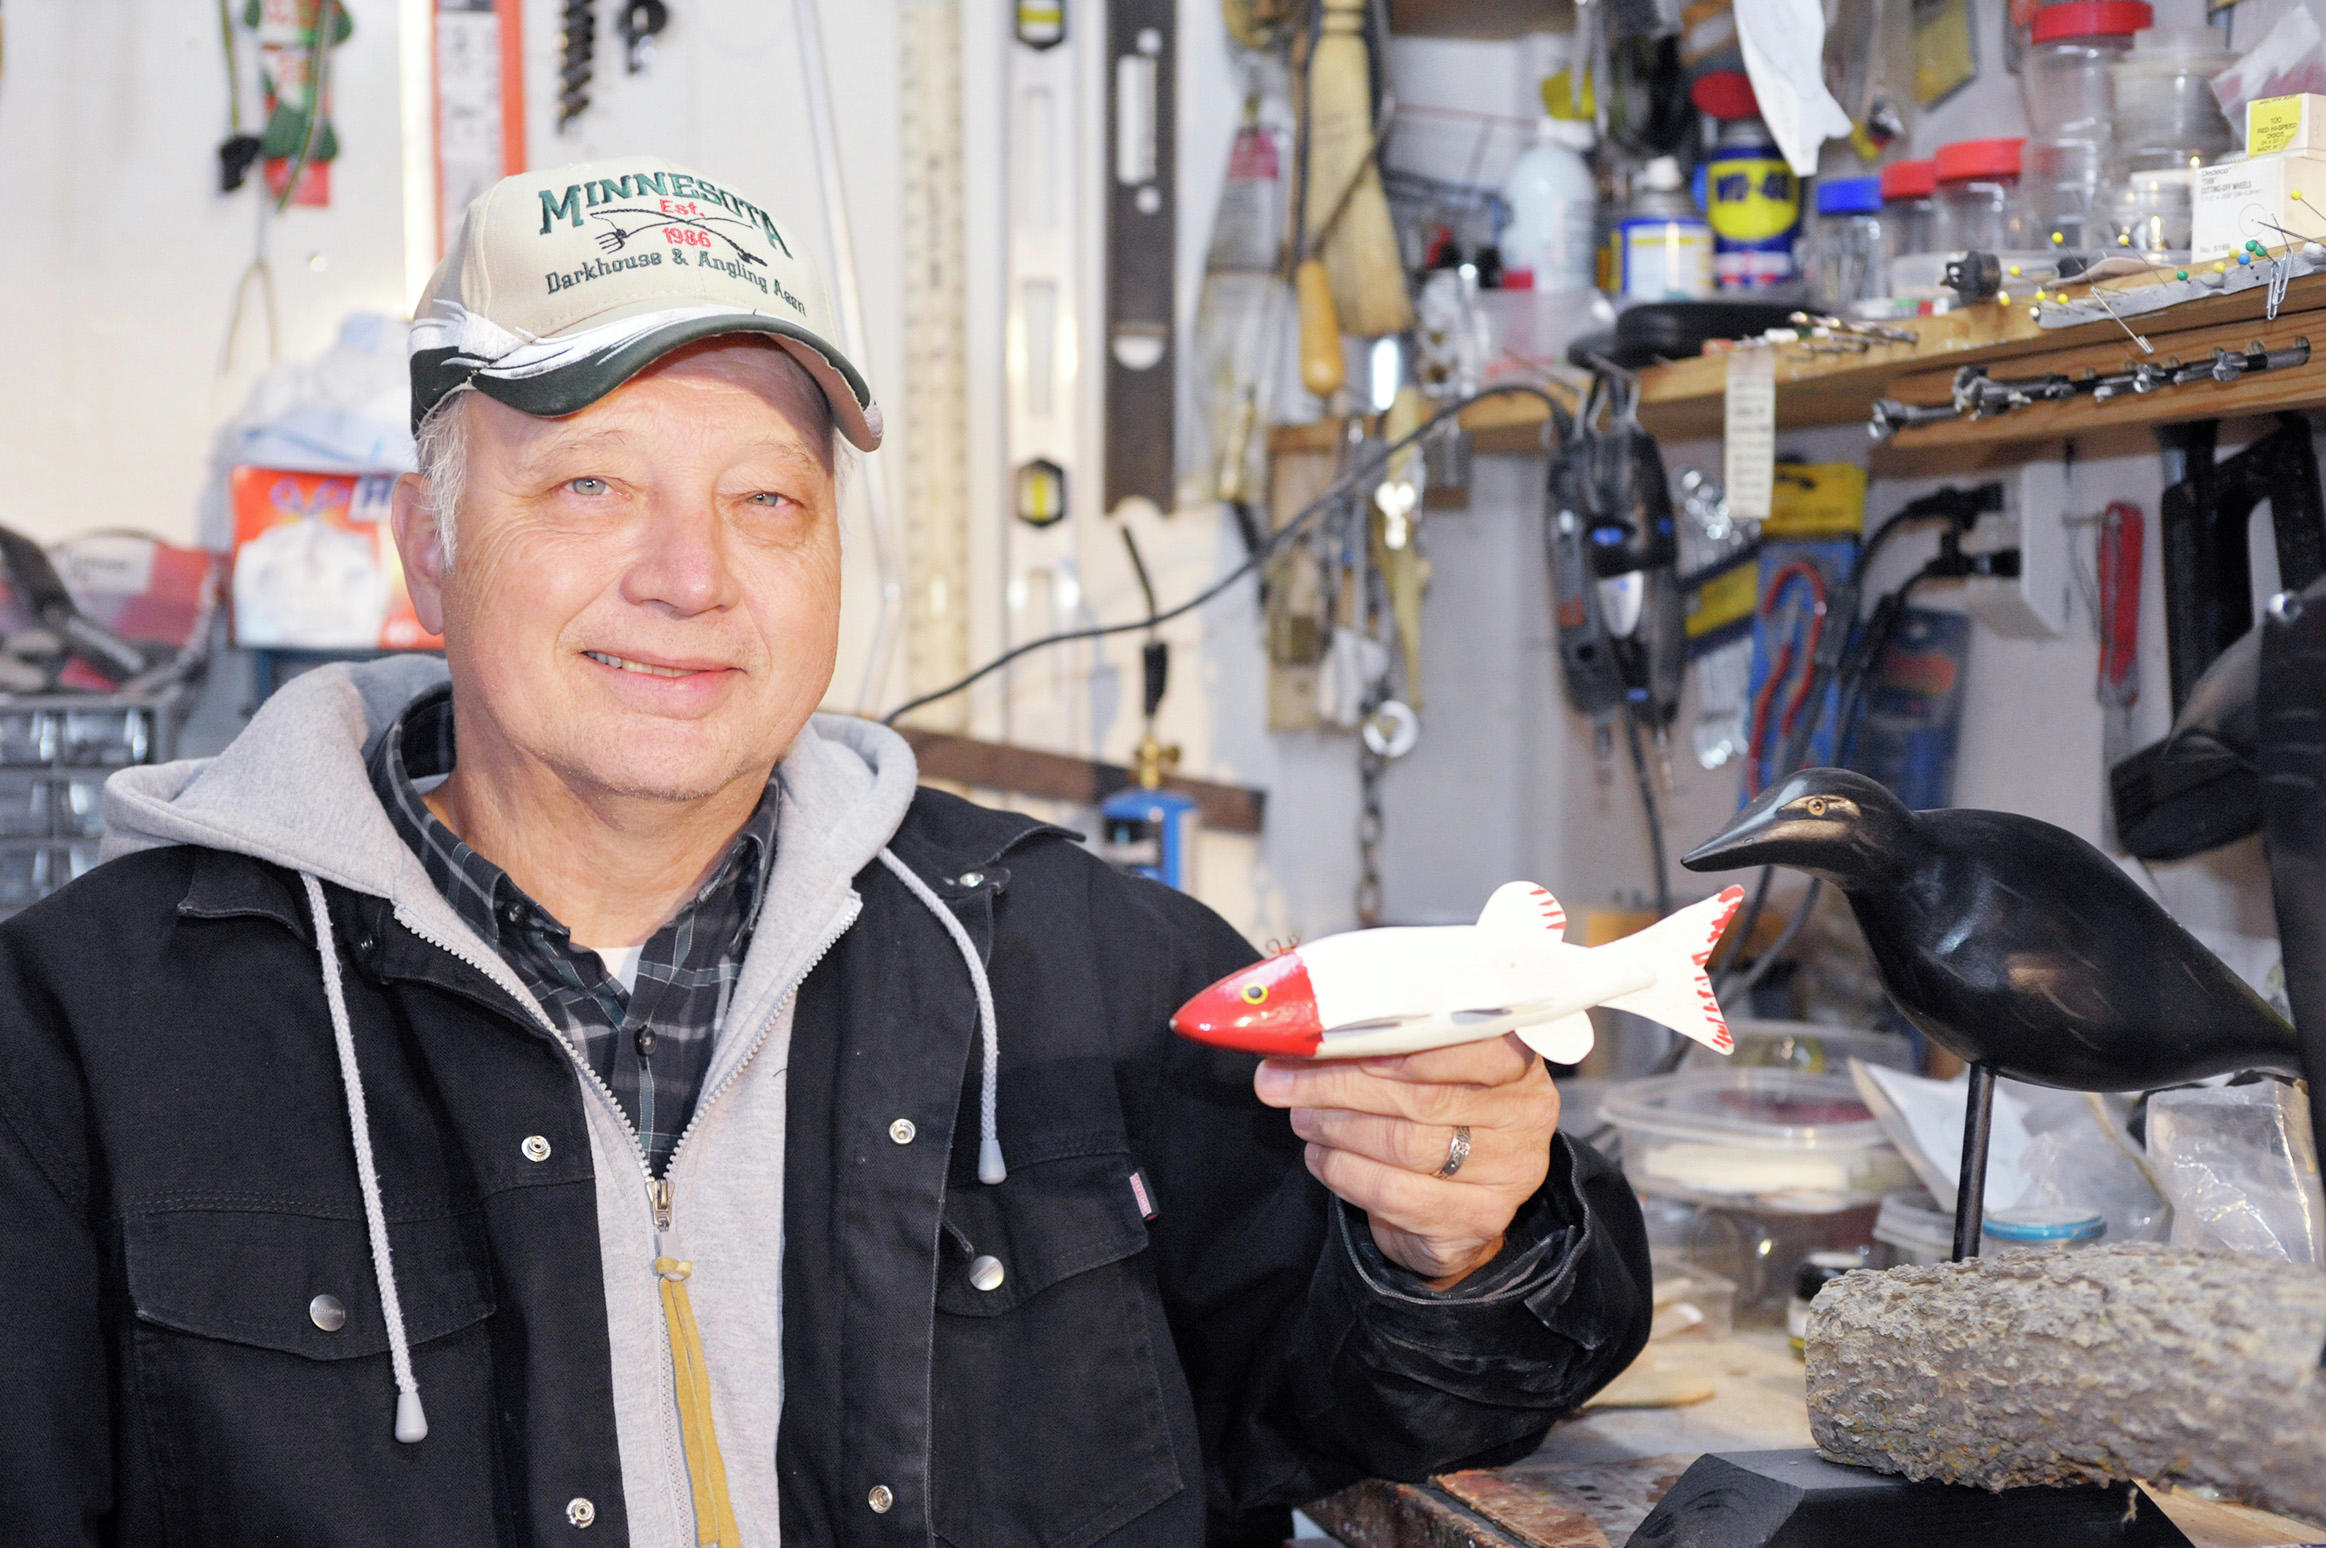 At his shop, Hedlund is surrounded by some of the tools he uses to carve his creations. (Lowell Anderson / Echo Press)